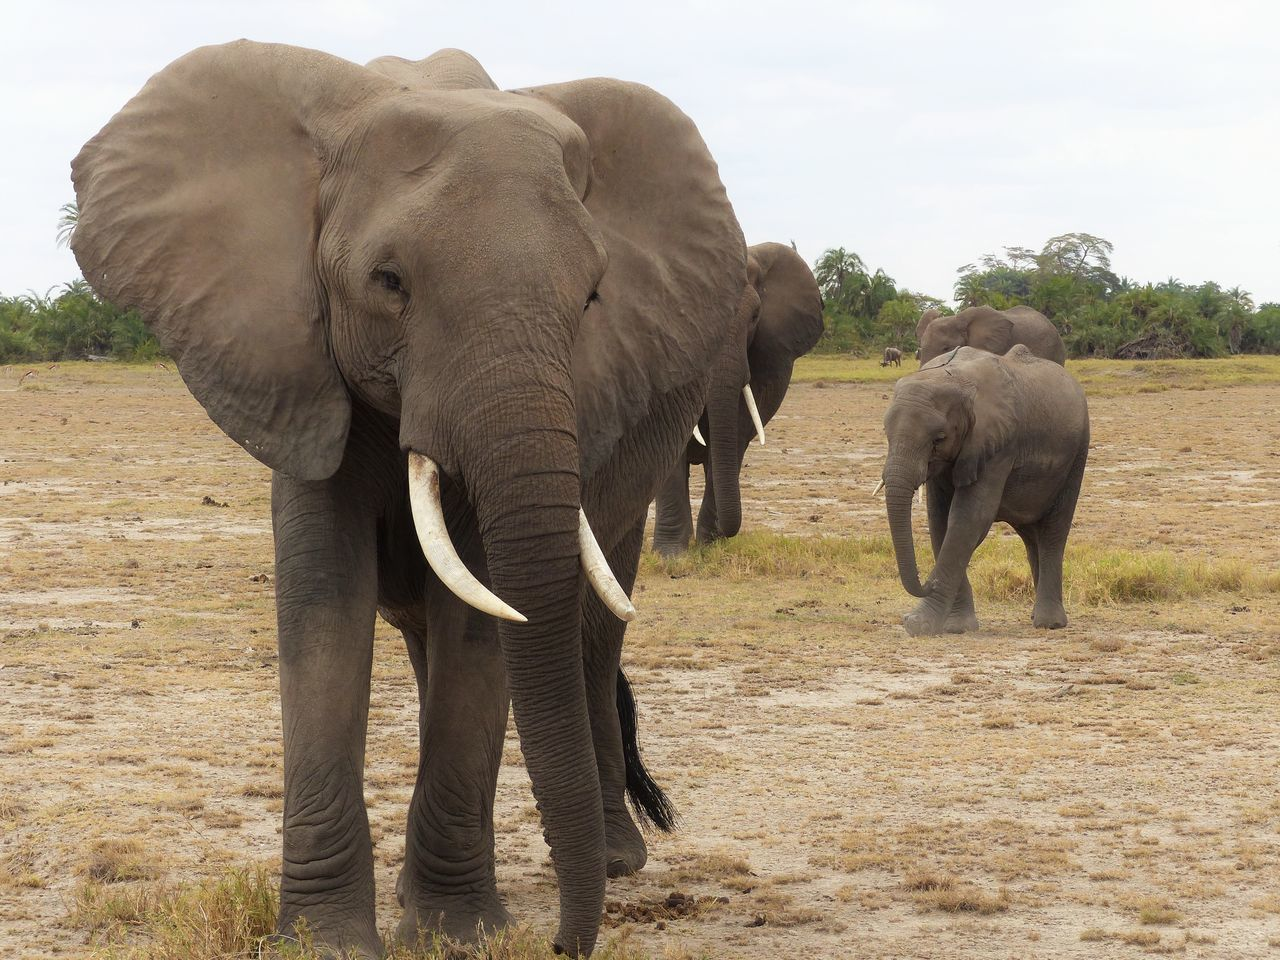 elephant, animals in the wild, african elephant, animal themes, animal trunk, safari animals, animal wildlife, trunk, mammal, tusk, elephant calf, no people, day, walking, outdoors, young animal, nature, landscape, full length, standing, sky, tree, grass, beauty in nature